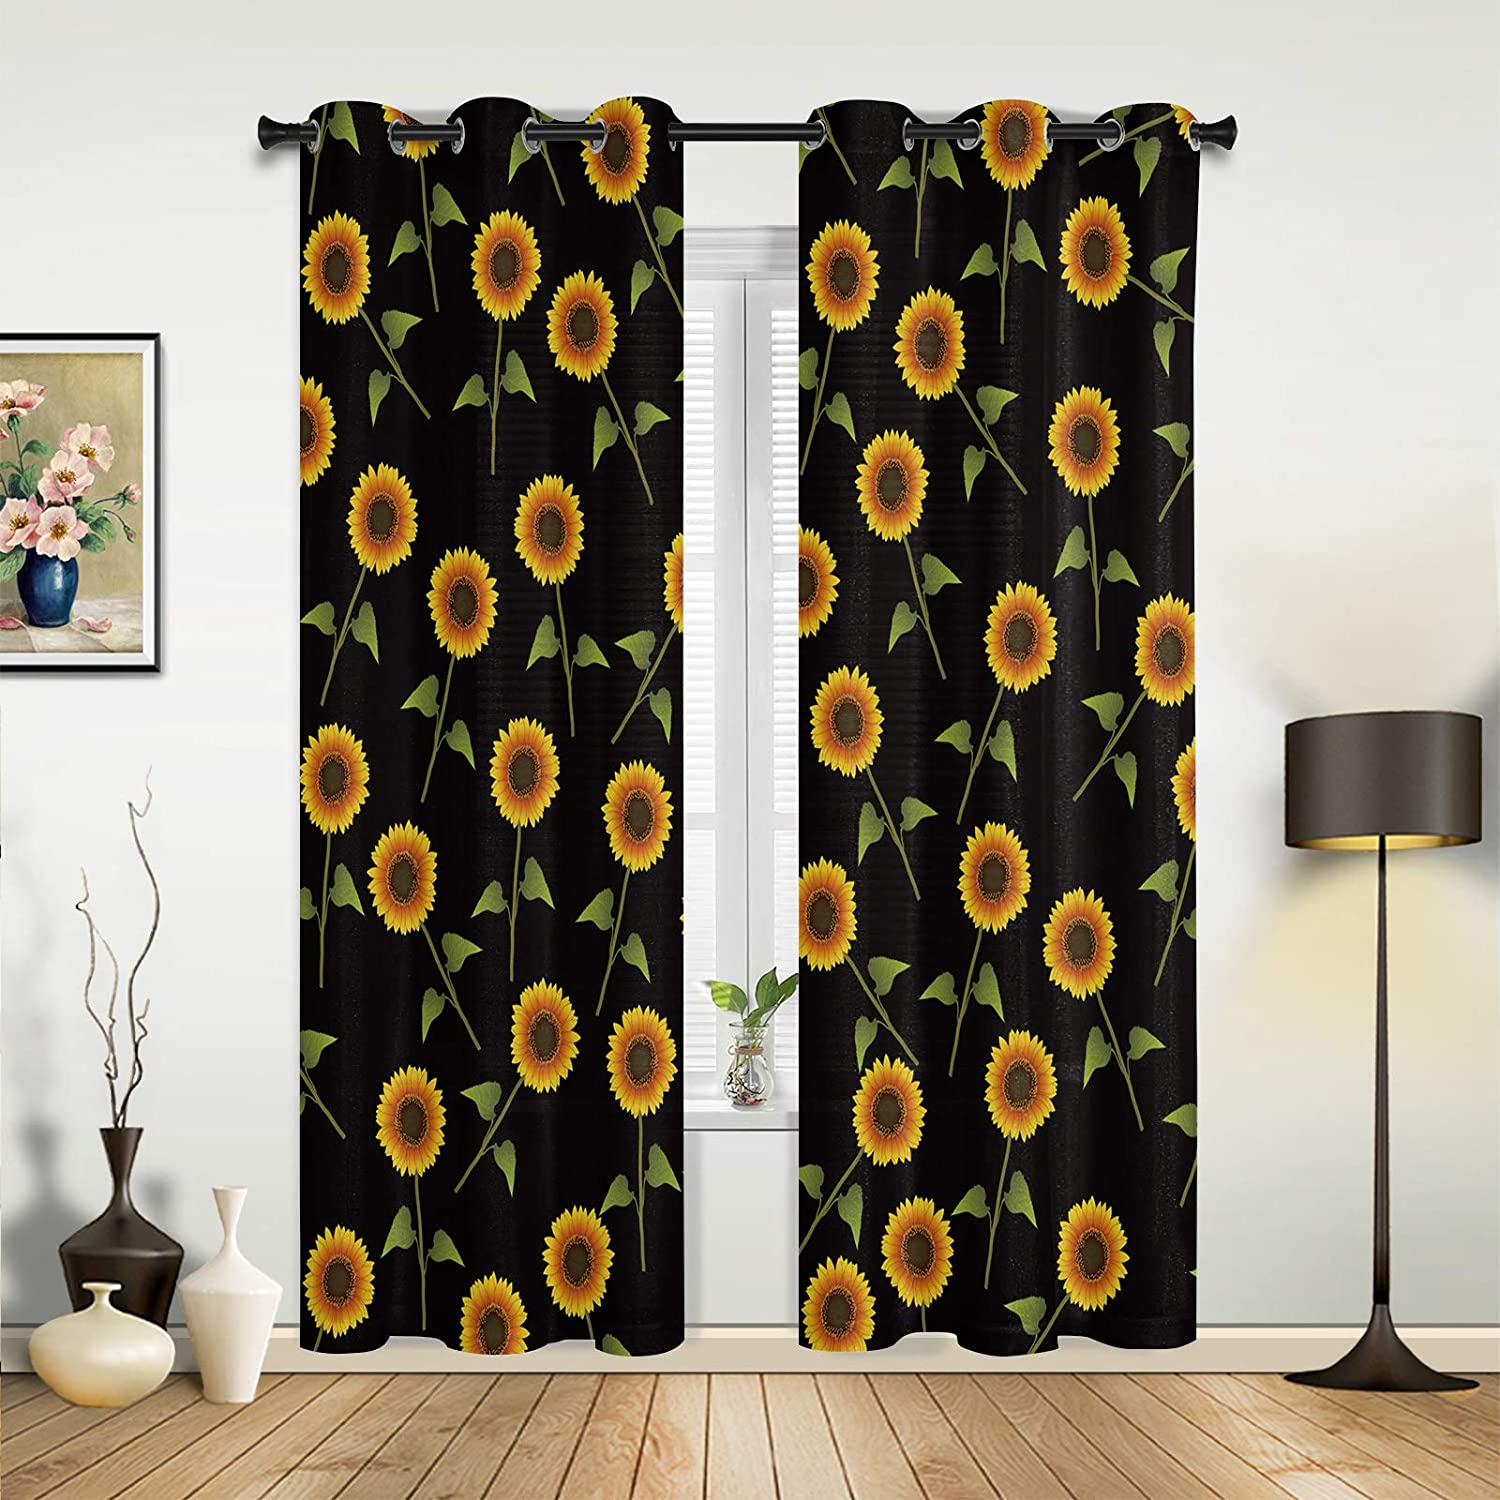 Beauty Decor Window Sheer Curtains for Max 74% OFF Living Bedroom Quality inspection Farm Room